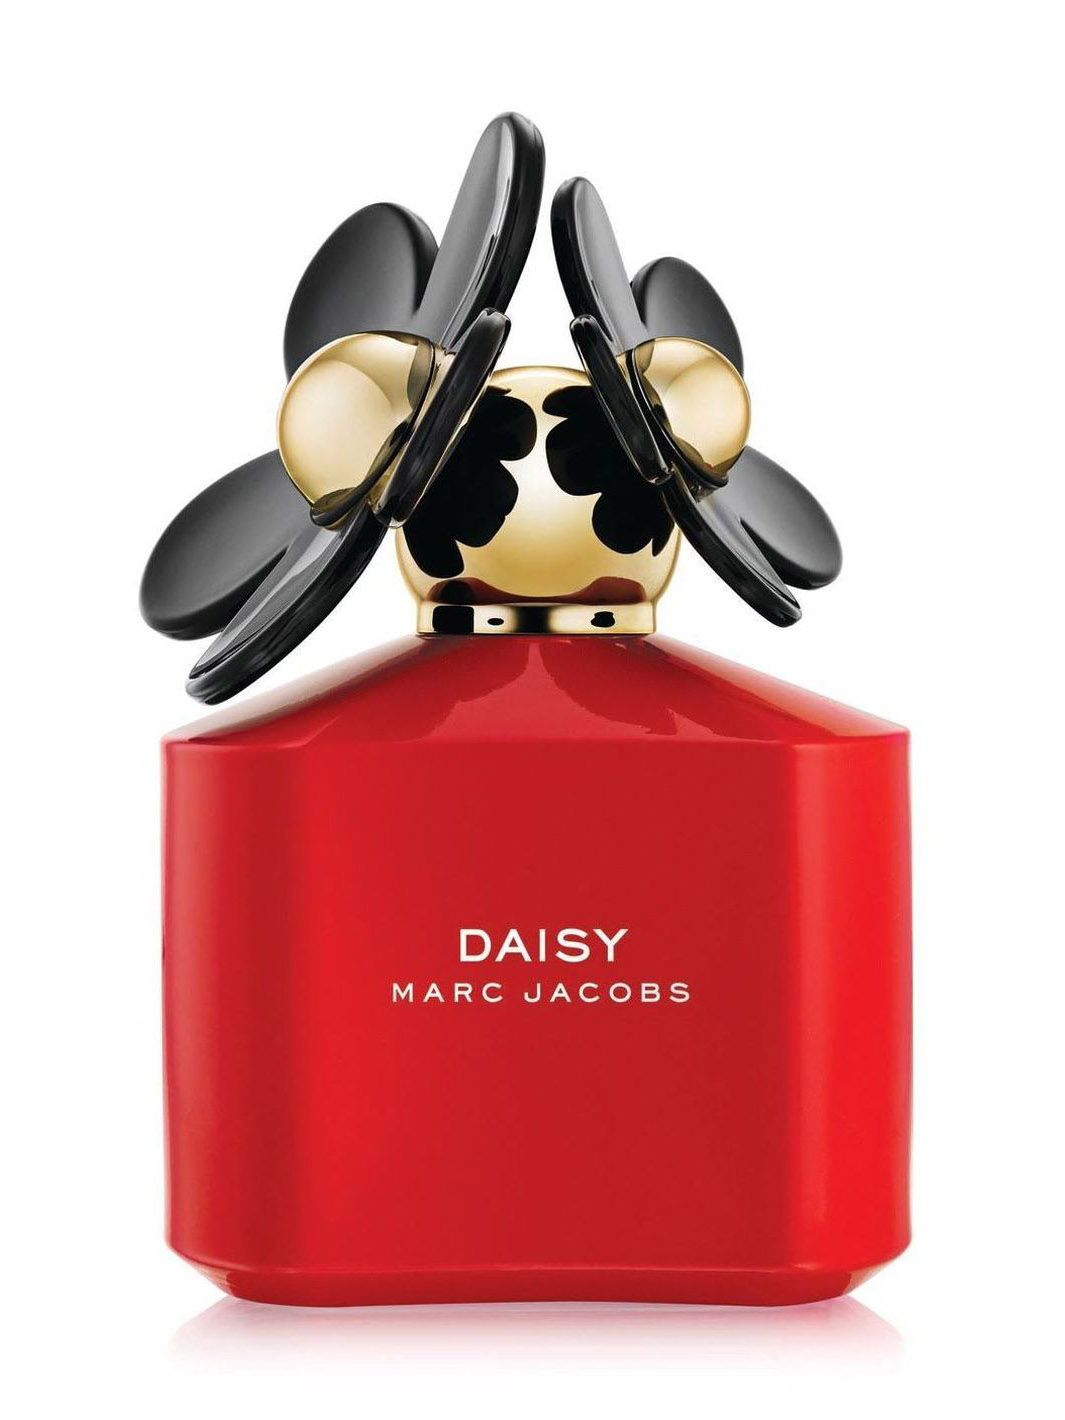 daisy pop art edition marc jacobs perfume a fragrance. Black Bedroom Furniture Sets. Home Design Ideas